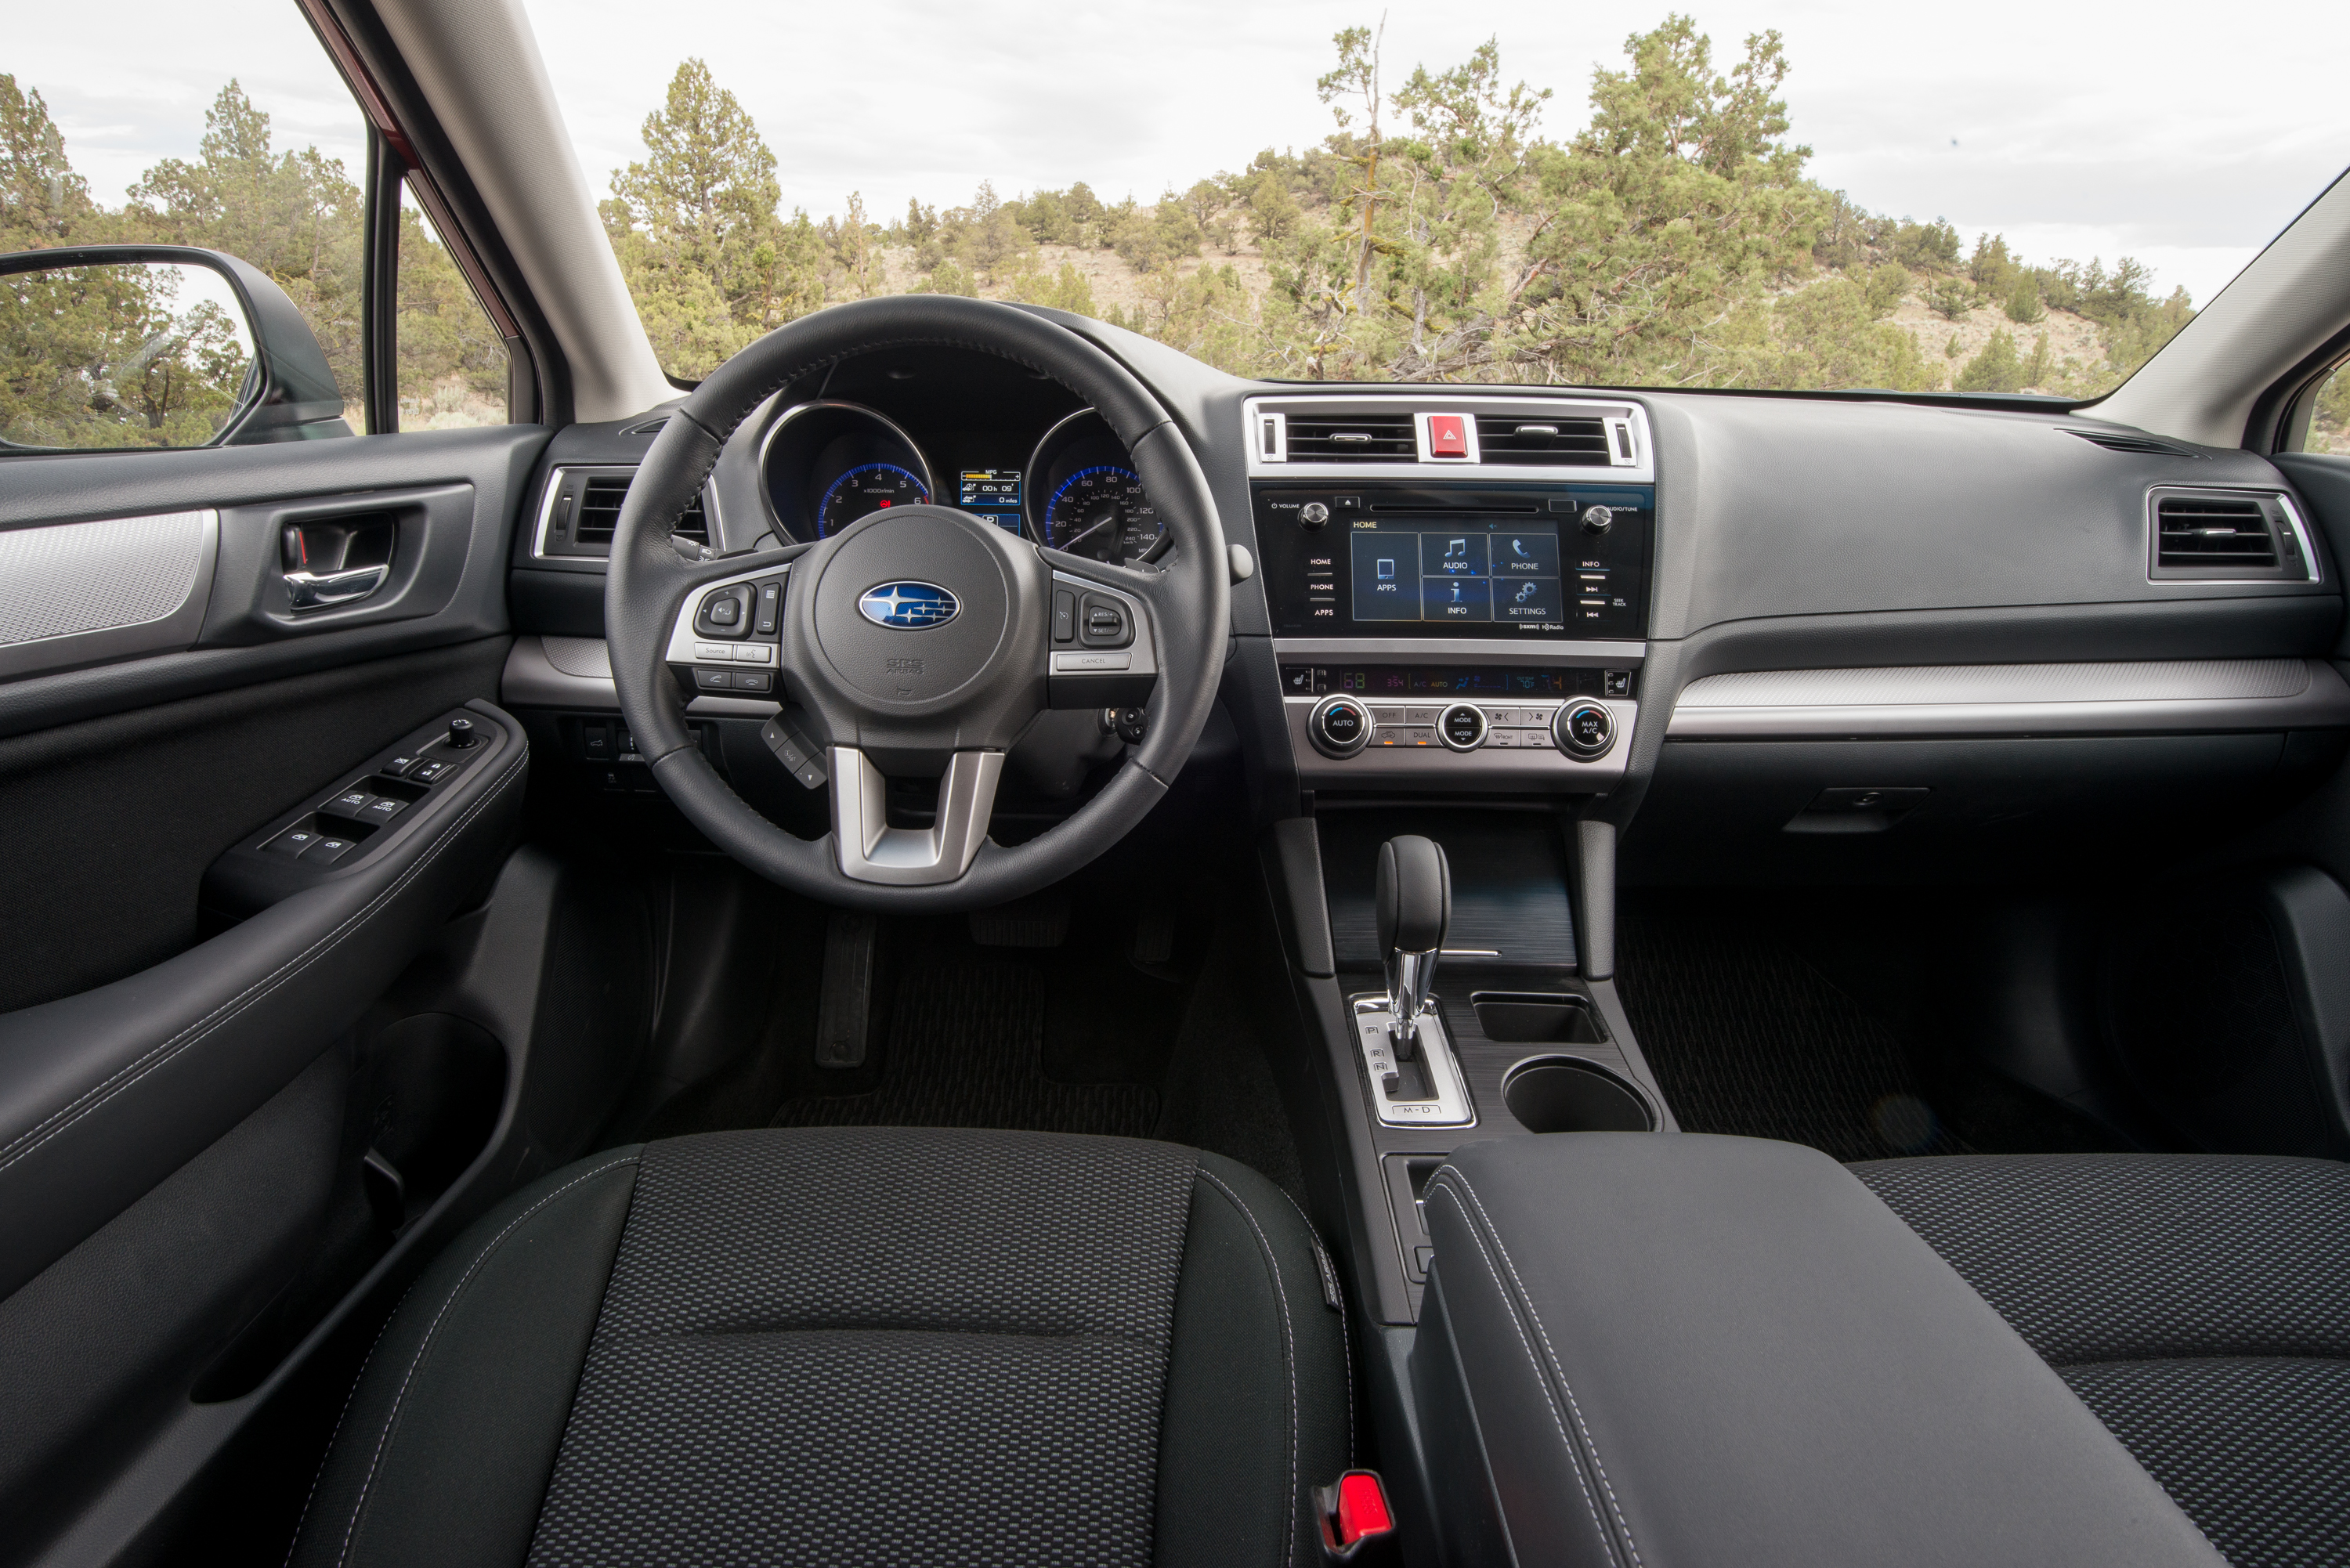 A simple, functional Subaru cabin. Photo: Subaru